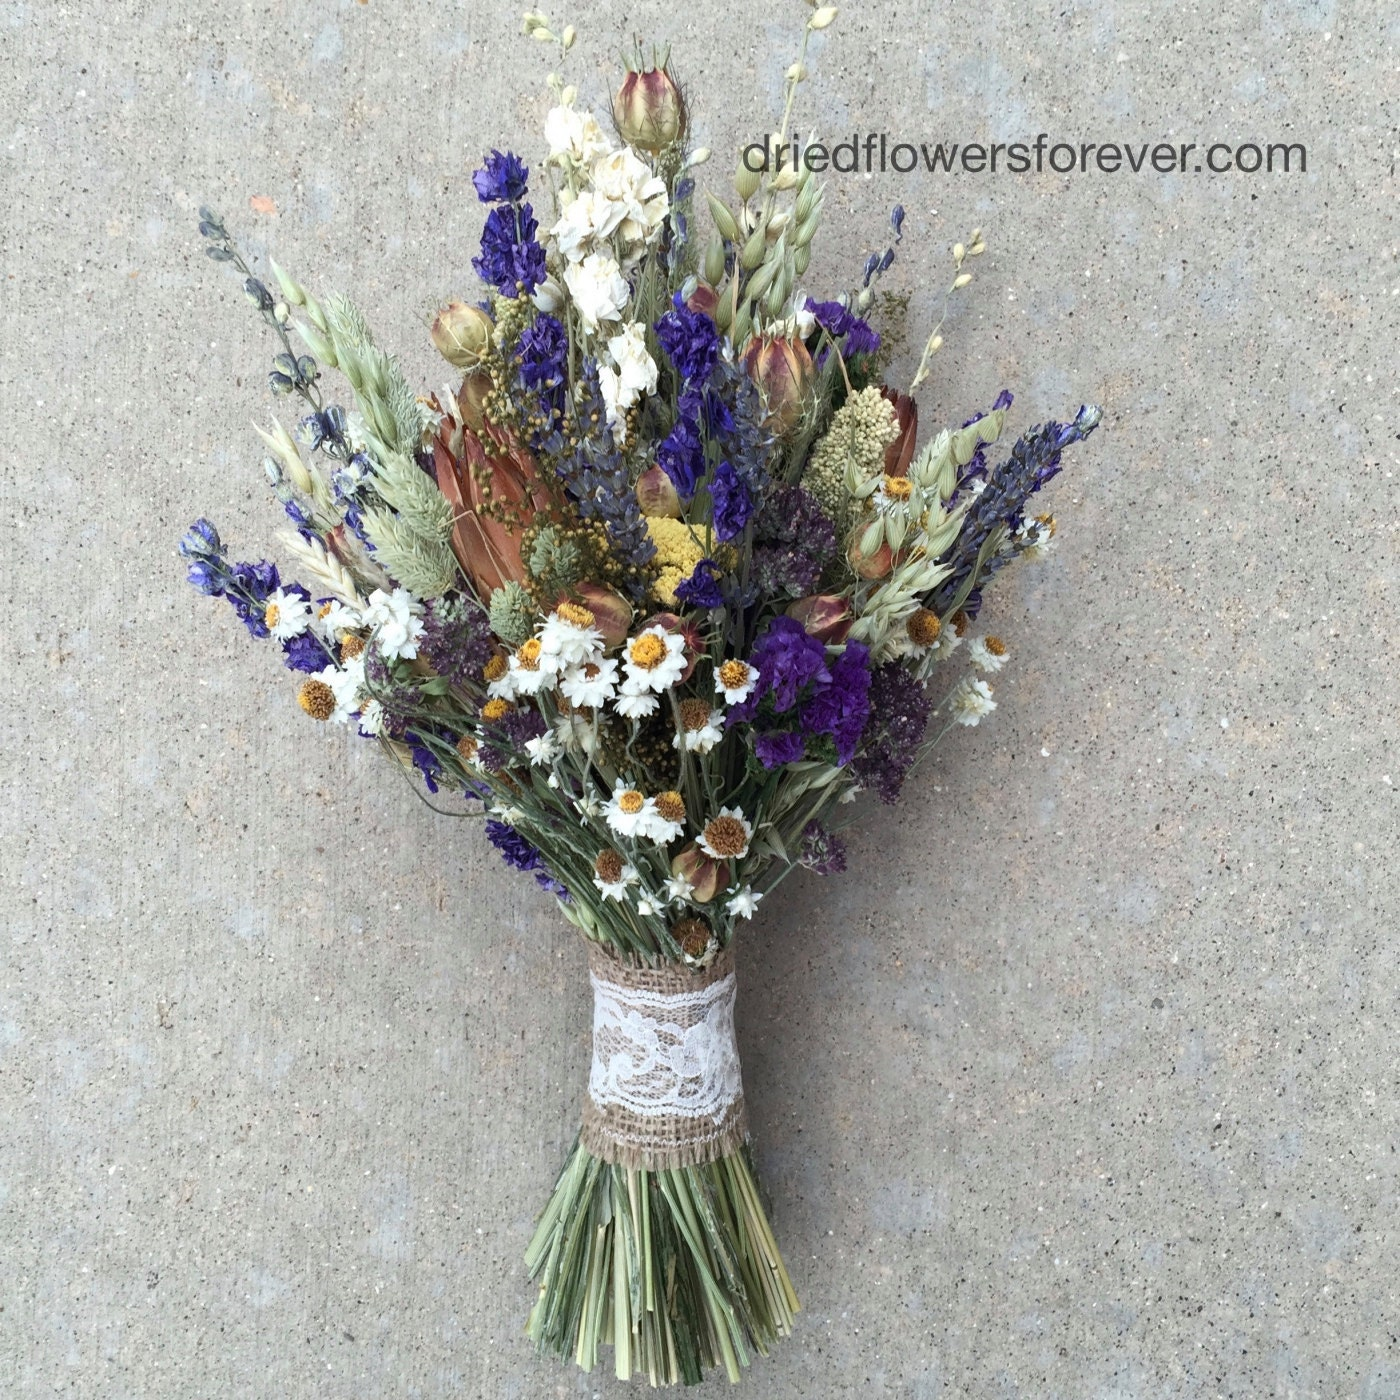 How To Dry A Bridal Bouquet Of Flowers : Purple dried flower wedding bouquet natural rustic preserved